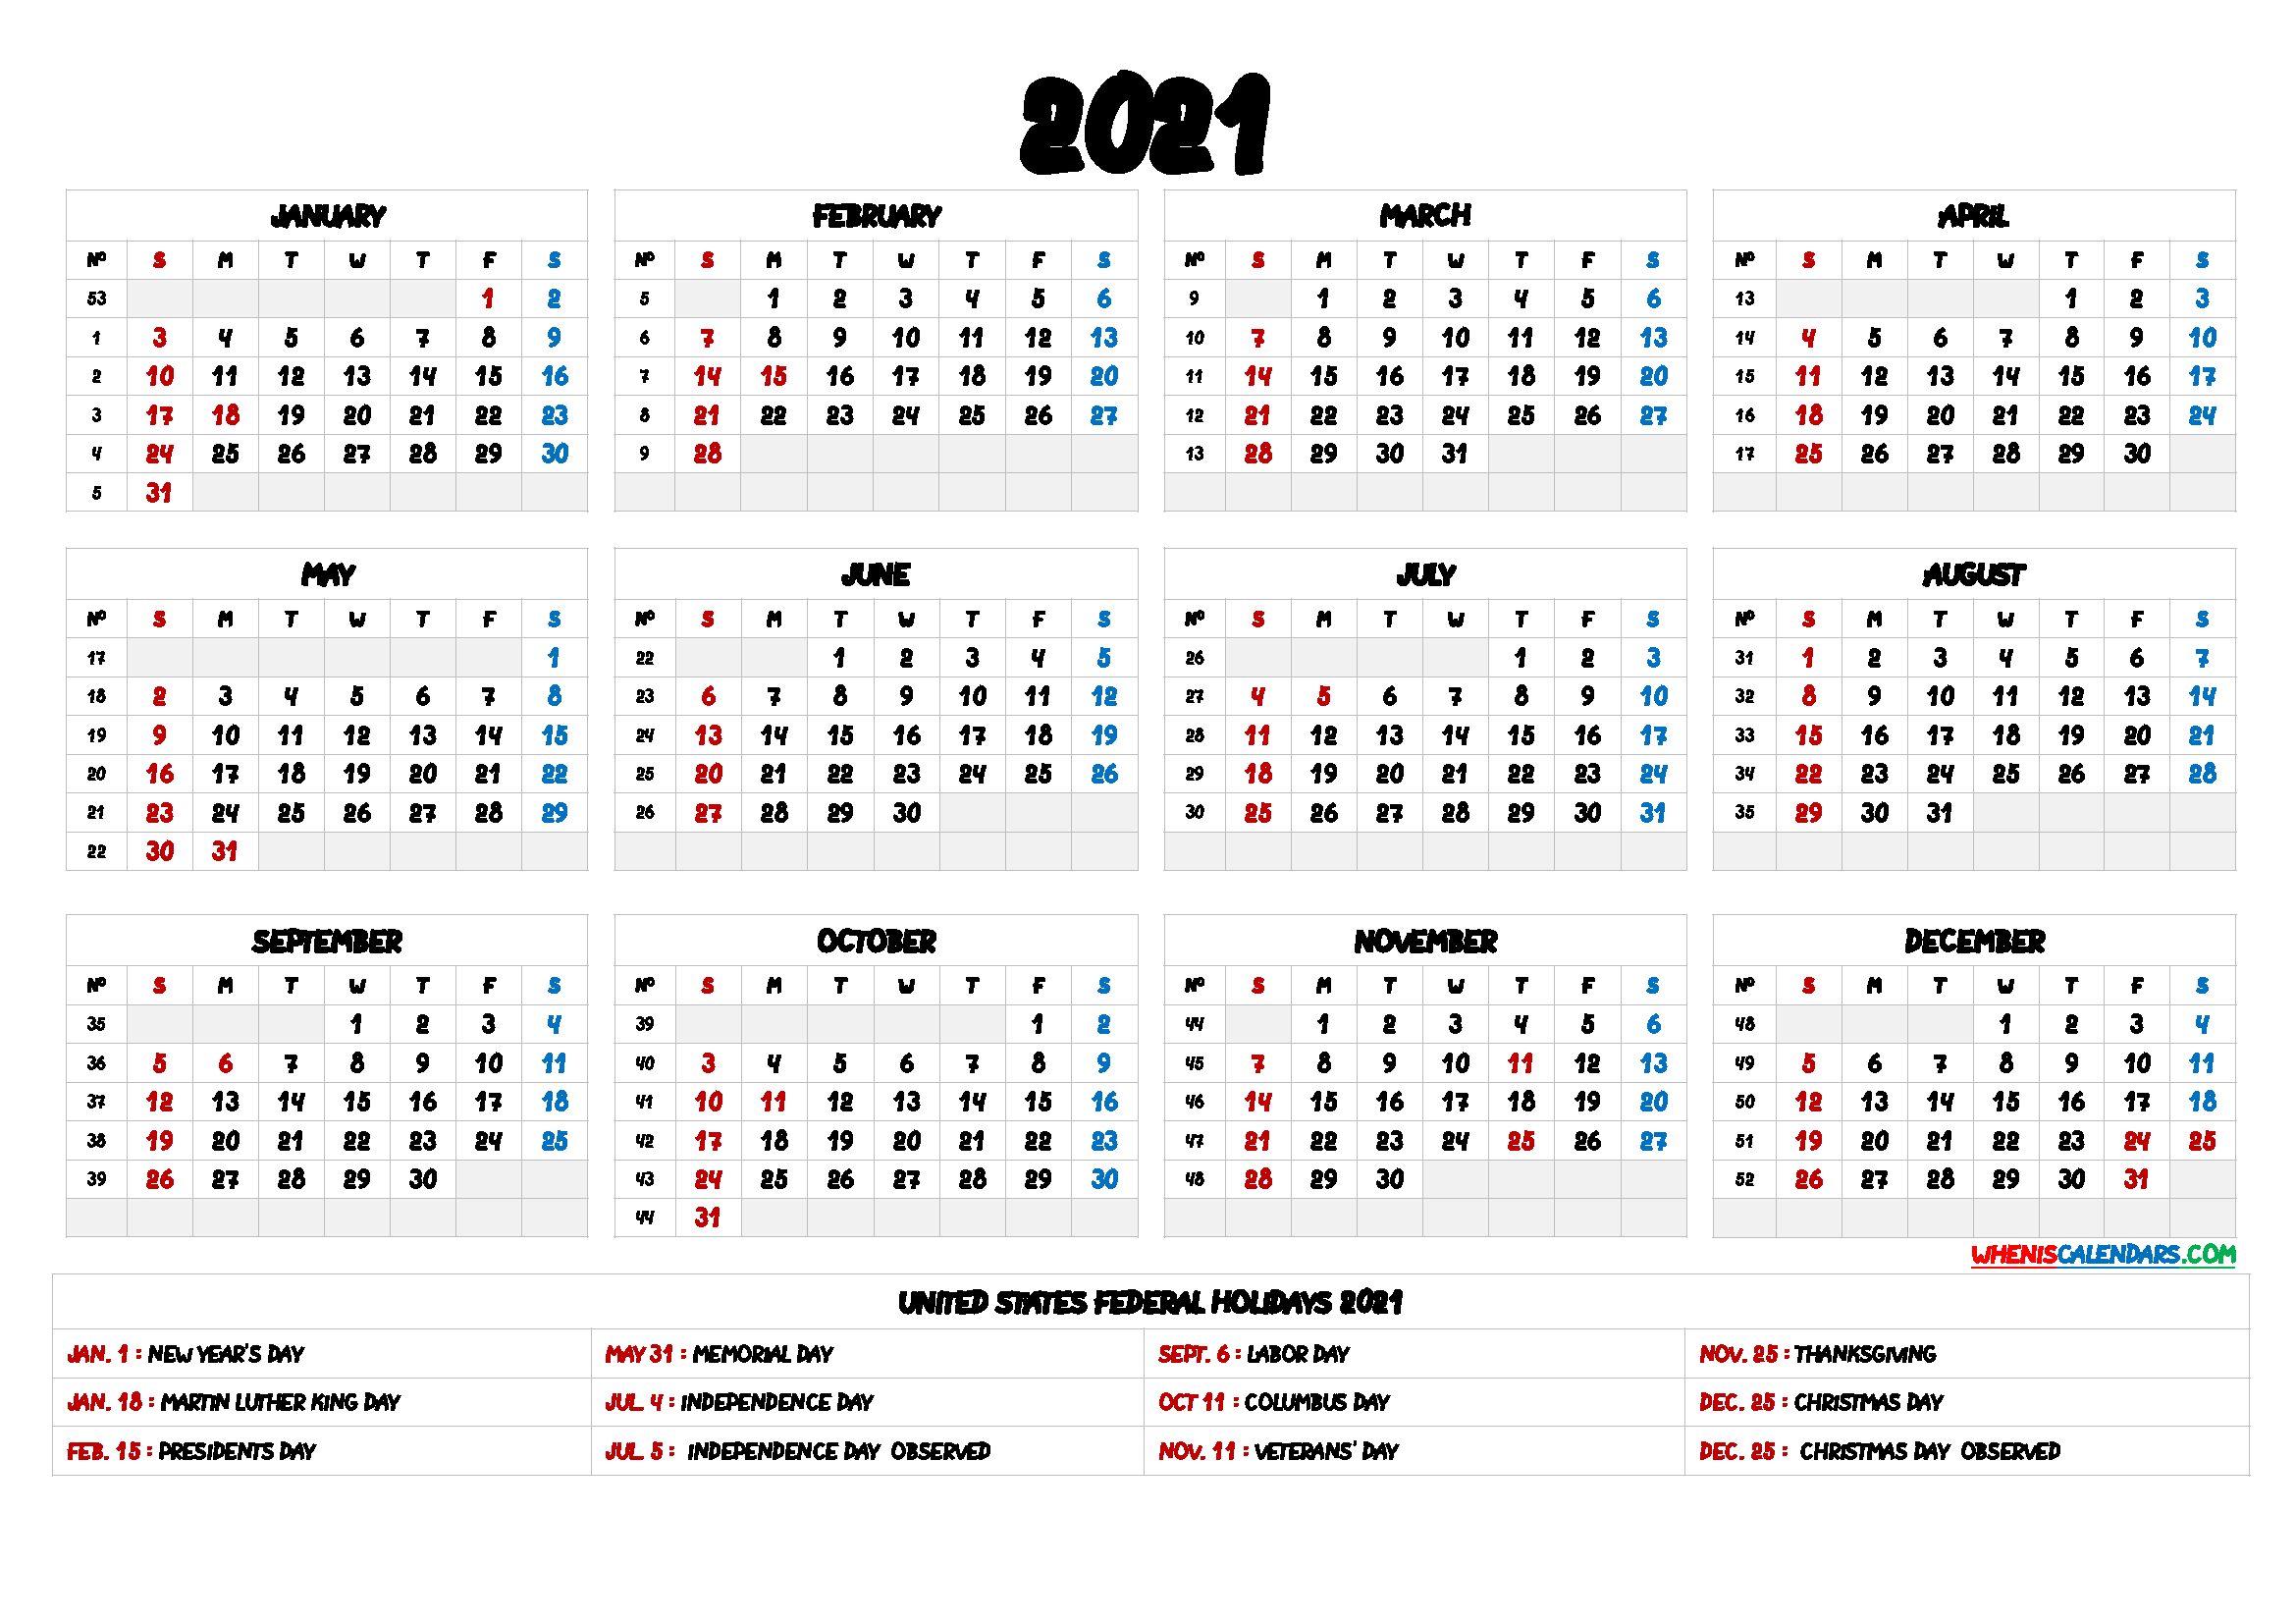 2021 One Page Calendar Printable With Holidays | Free 2021 ...